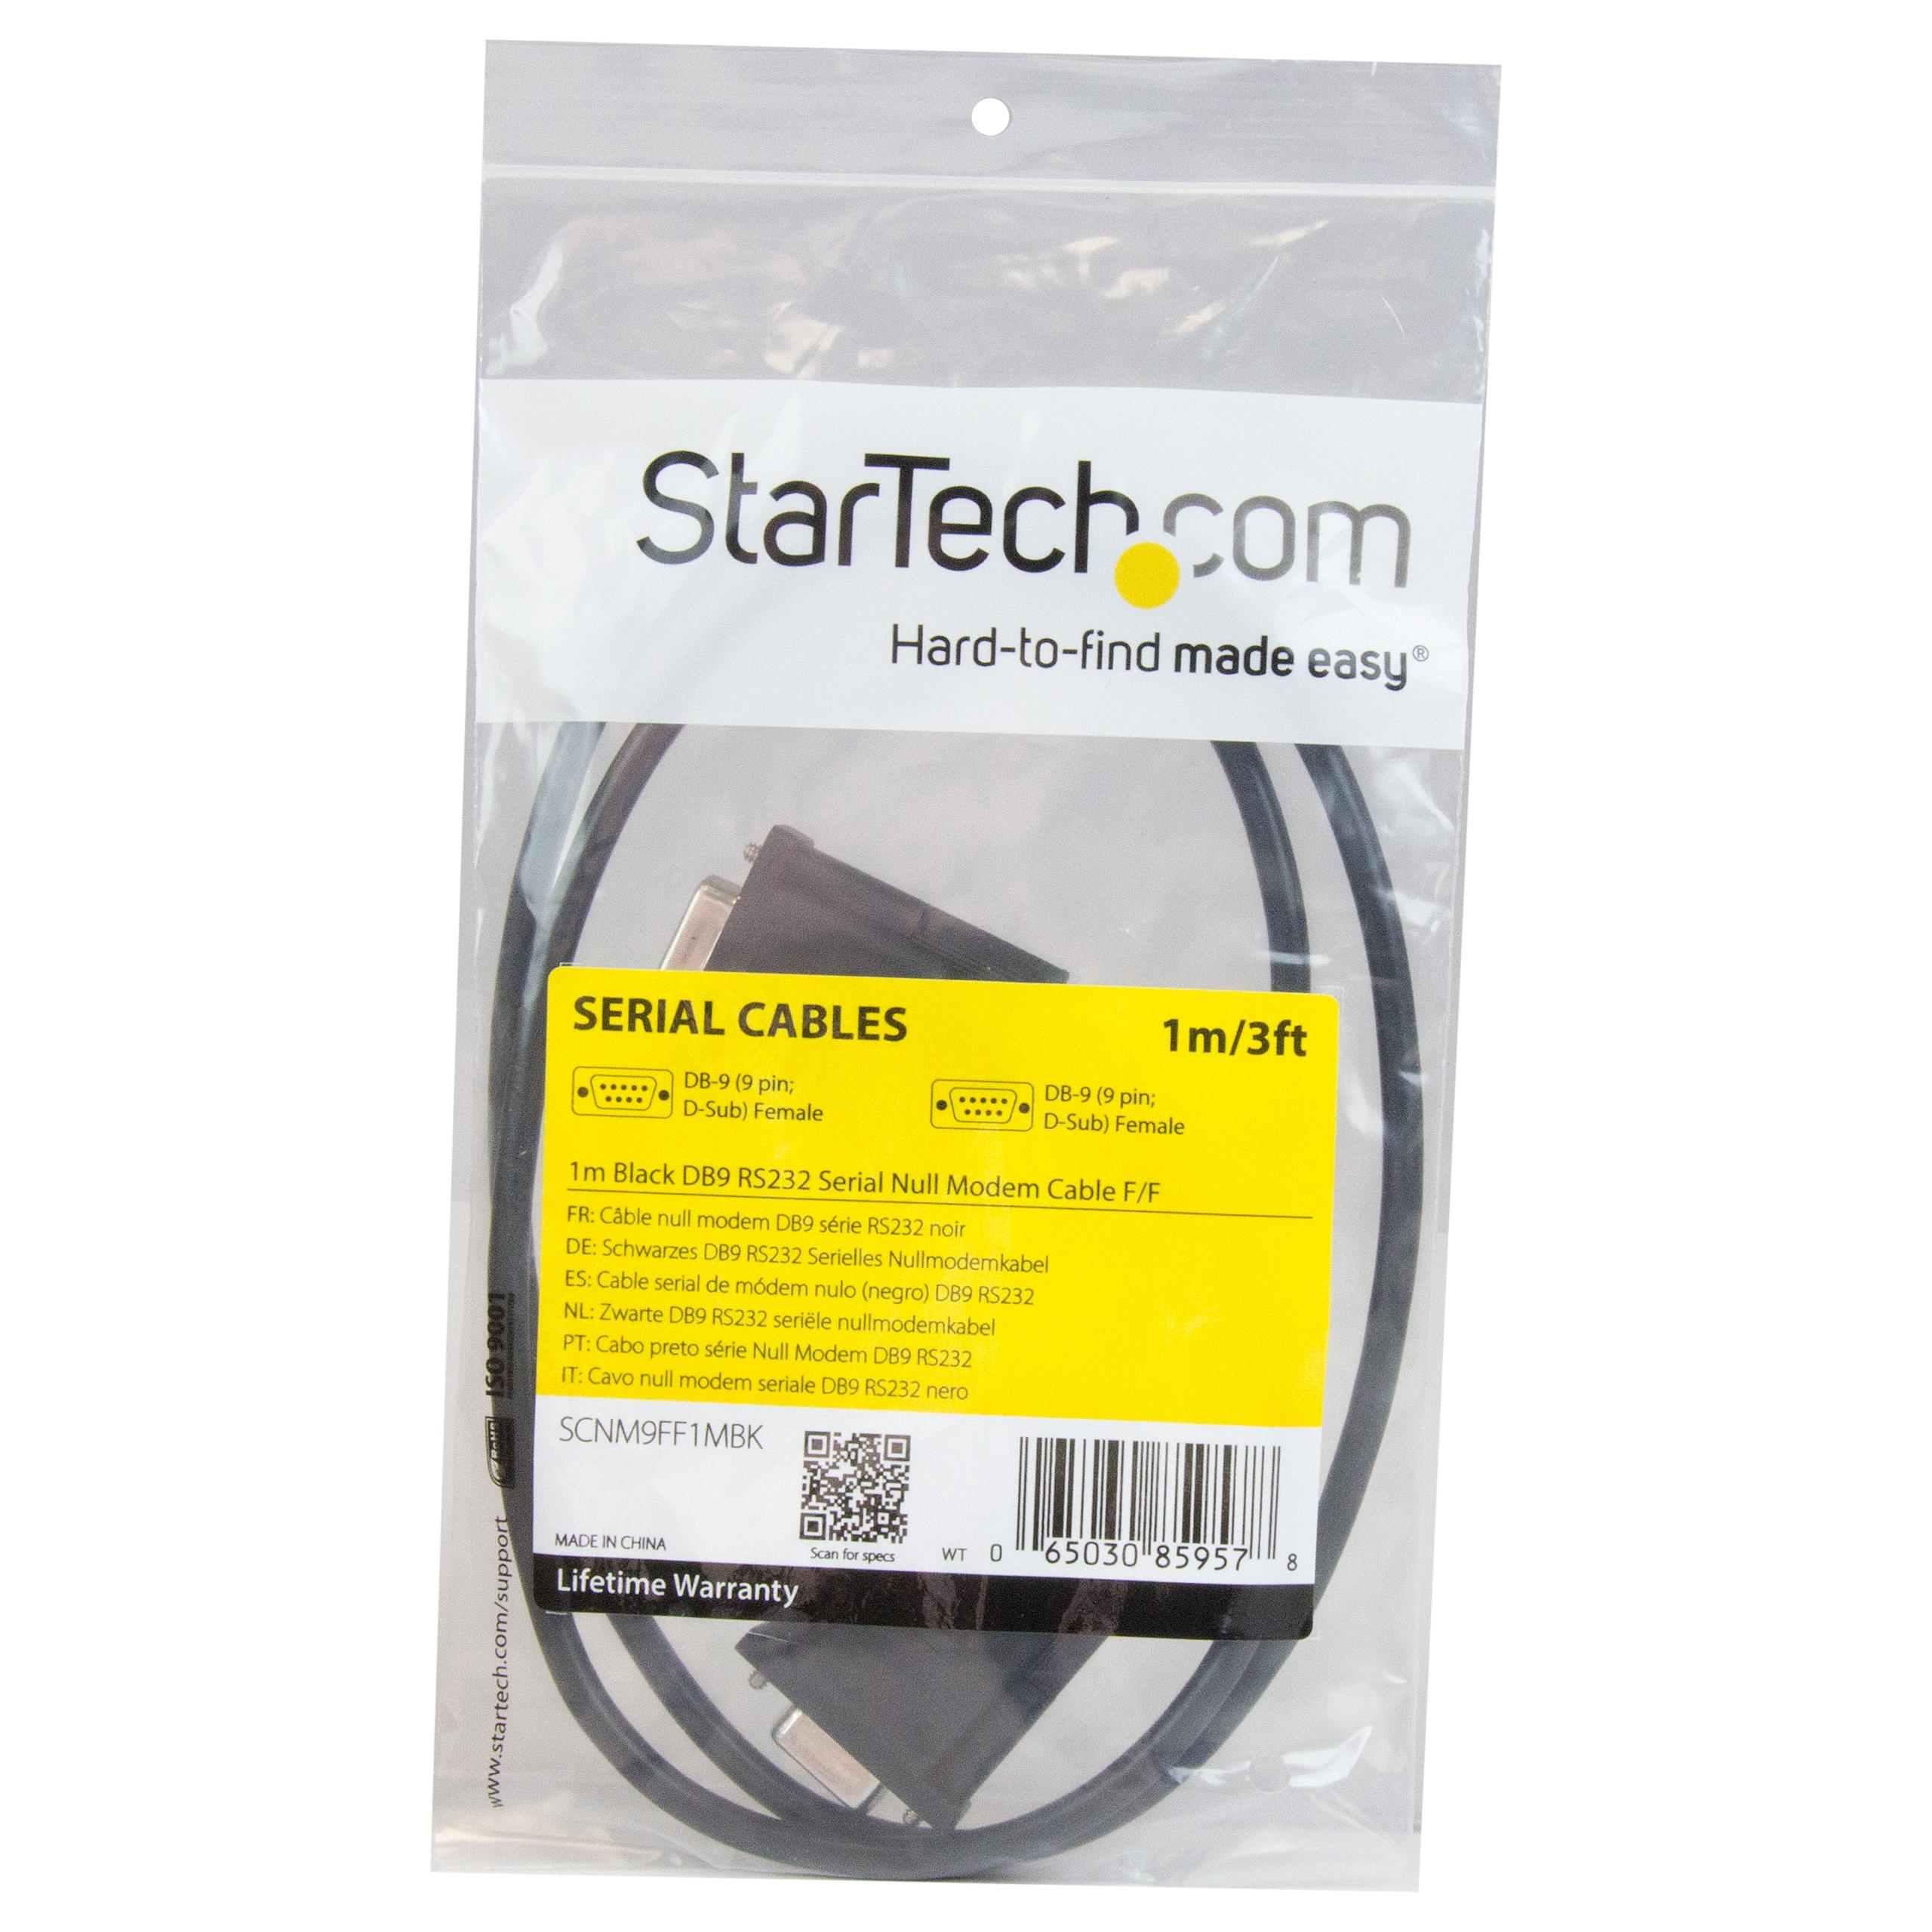 Startechcom 1m Black Db9 Rs232 Serial Null Modem Cable Addition 9 Pin Connector Pinout On Wiring Diagram Sub D Port Or Transfer Files Directly From Pc To Via A Connection Read More View Larger